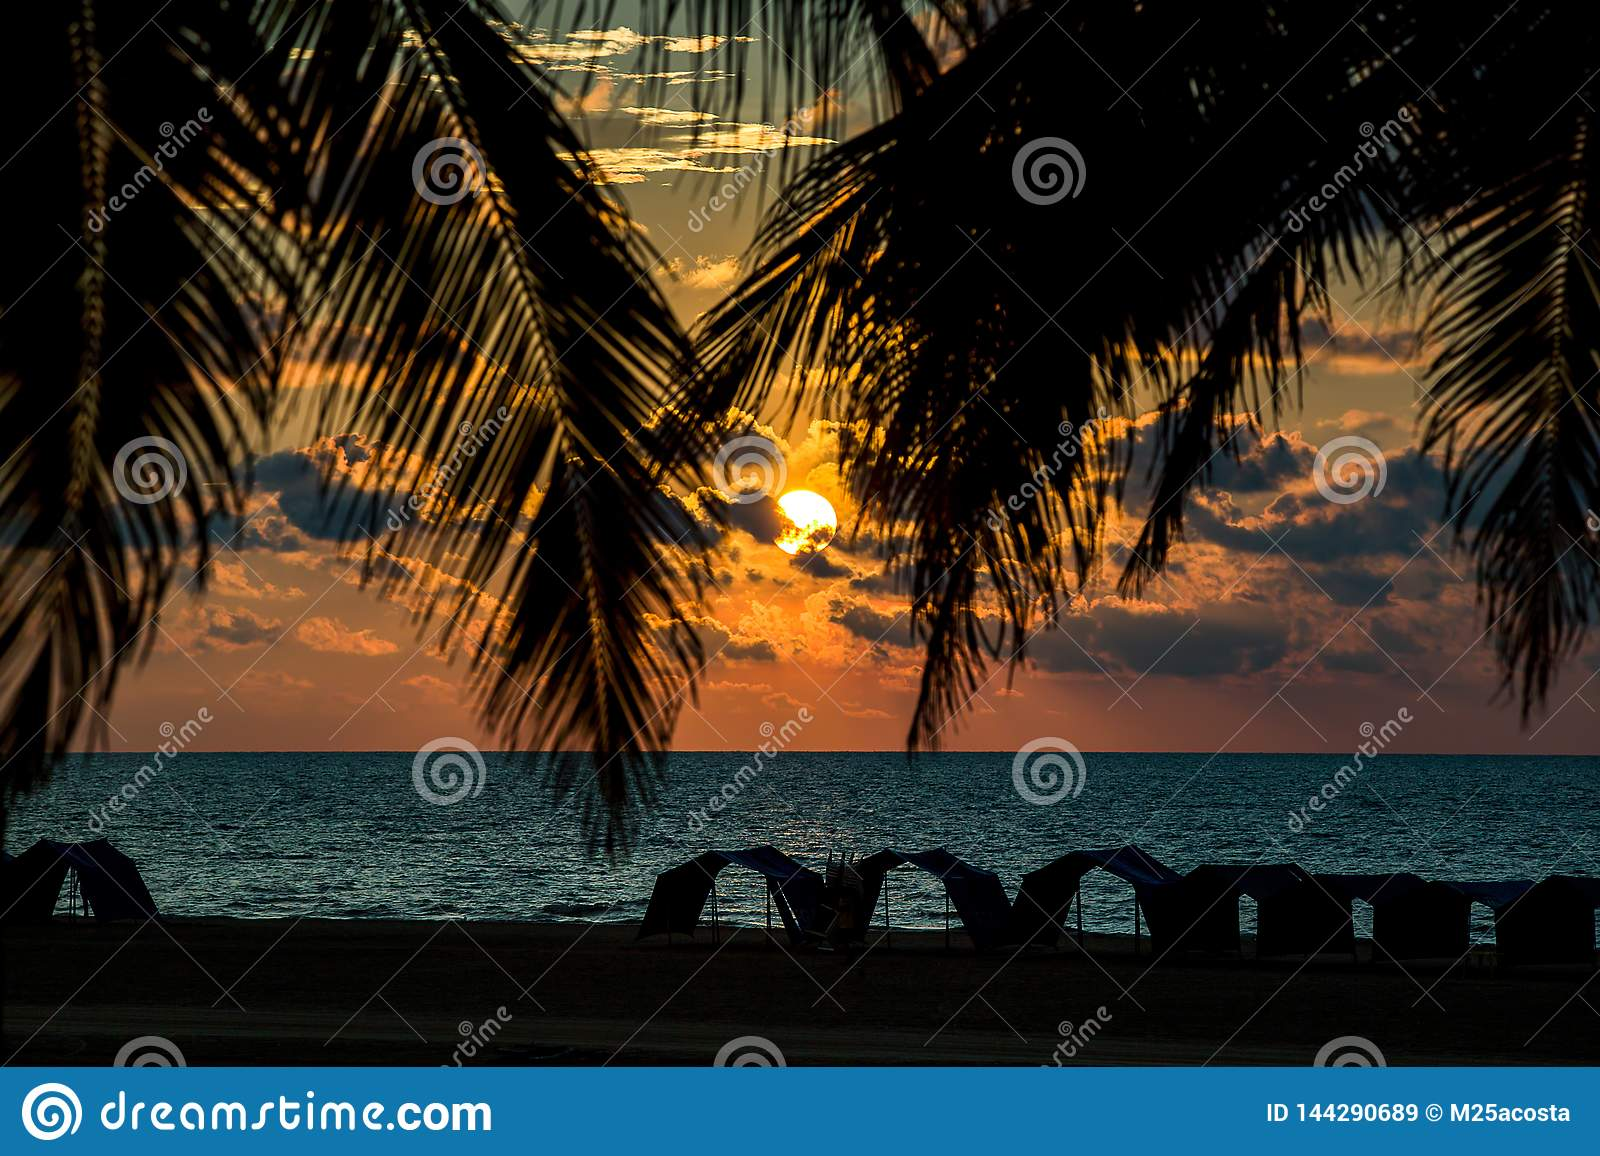 Sunset between the palm trees